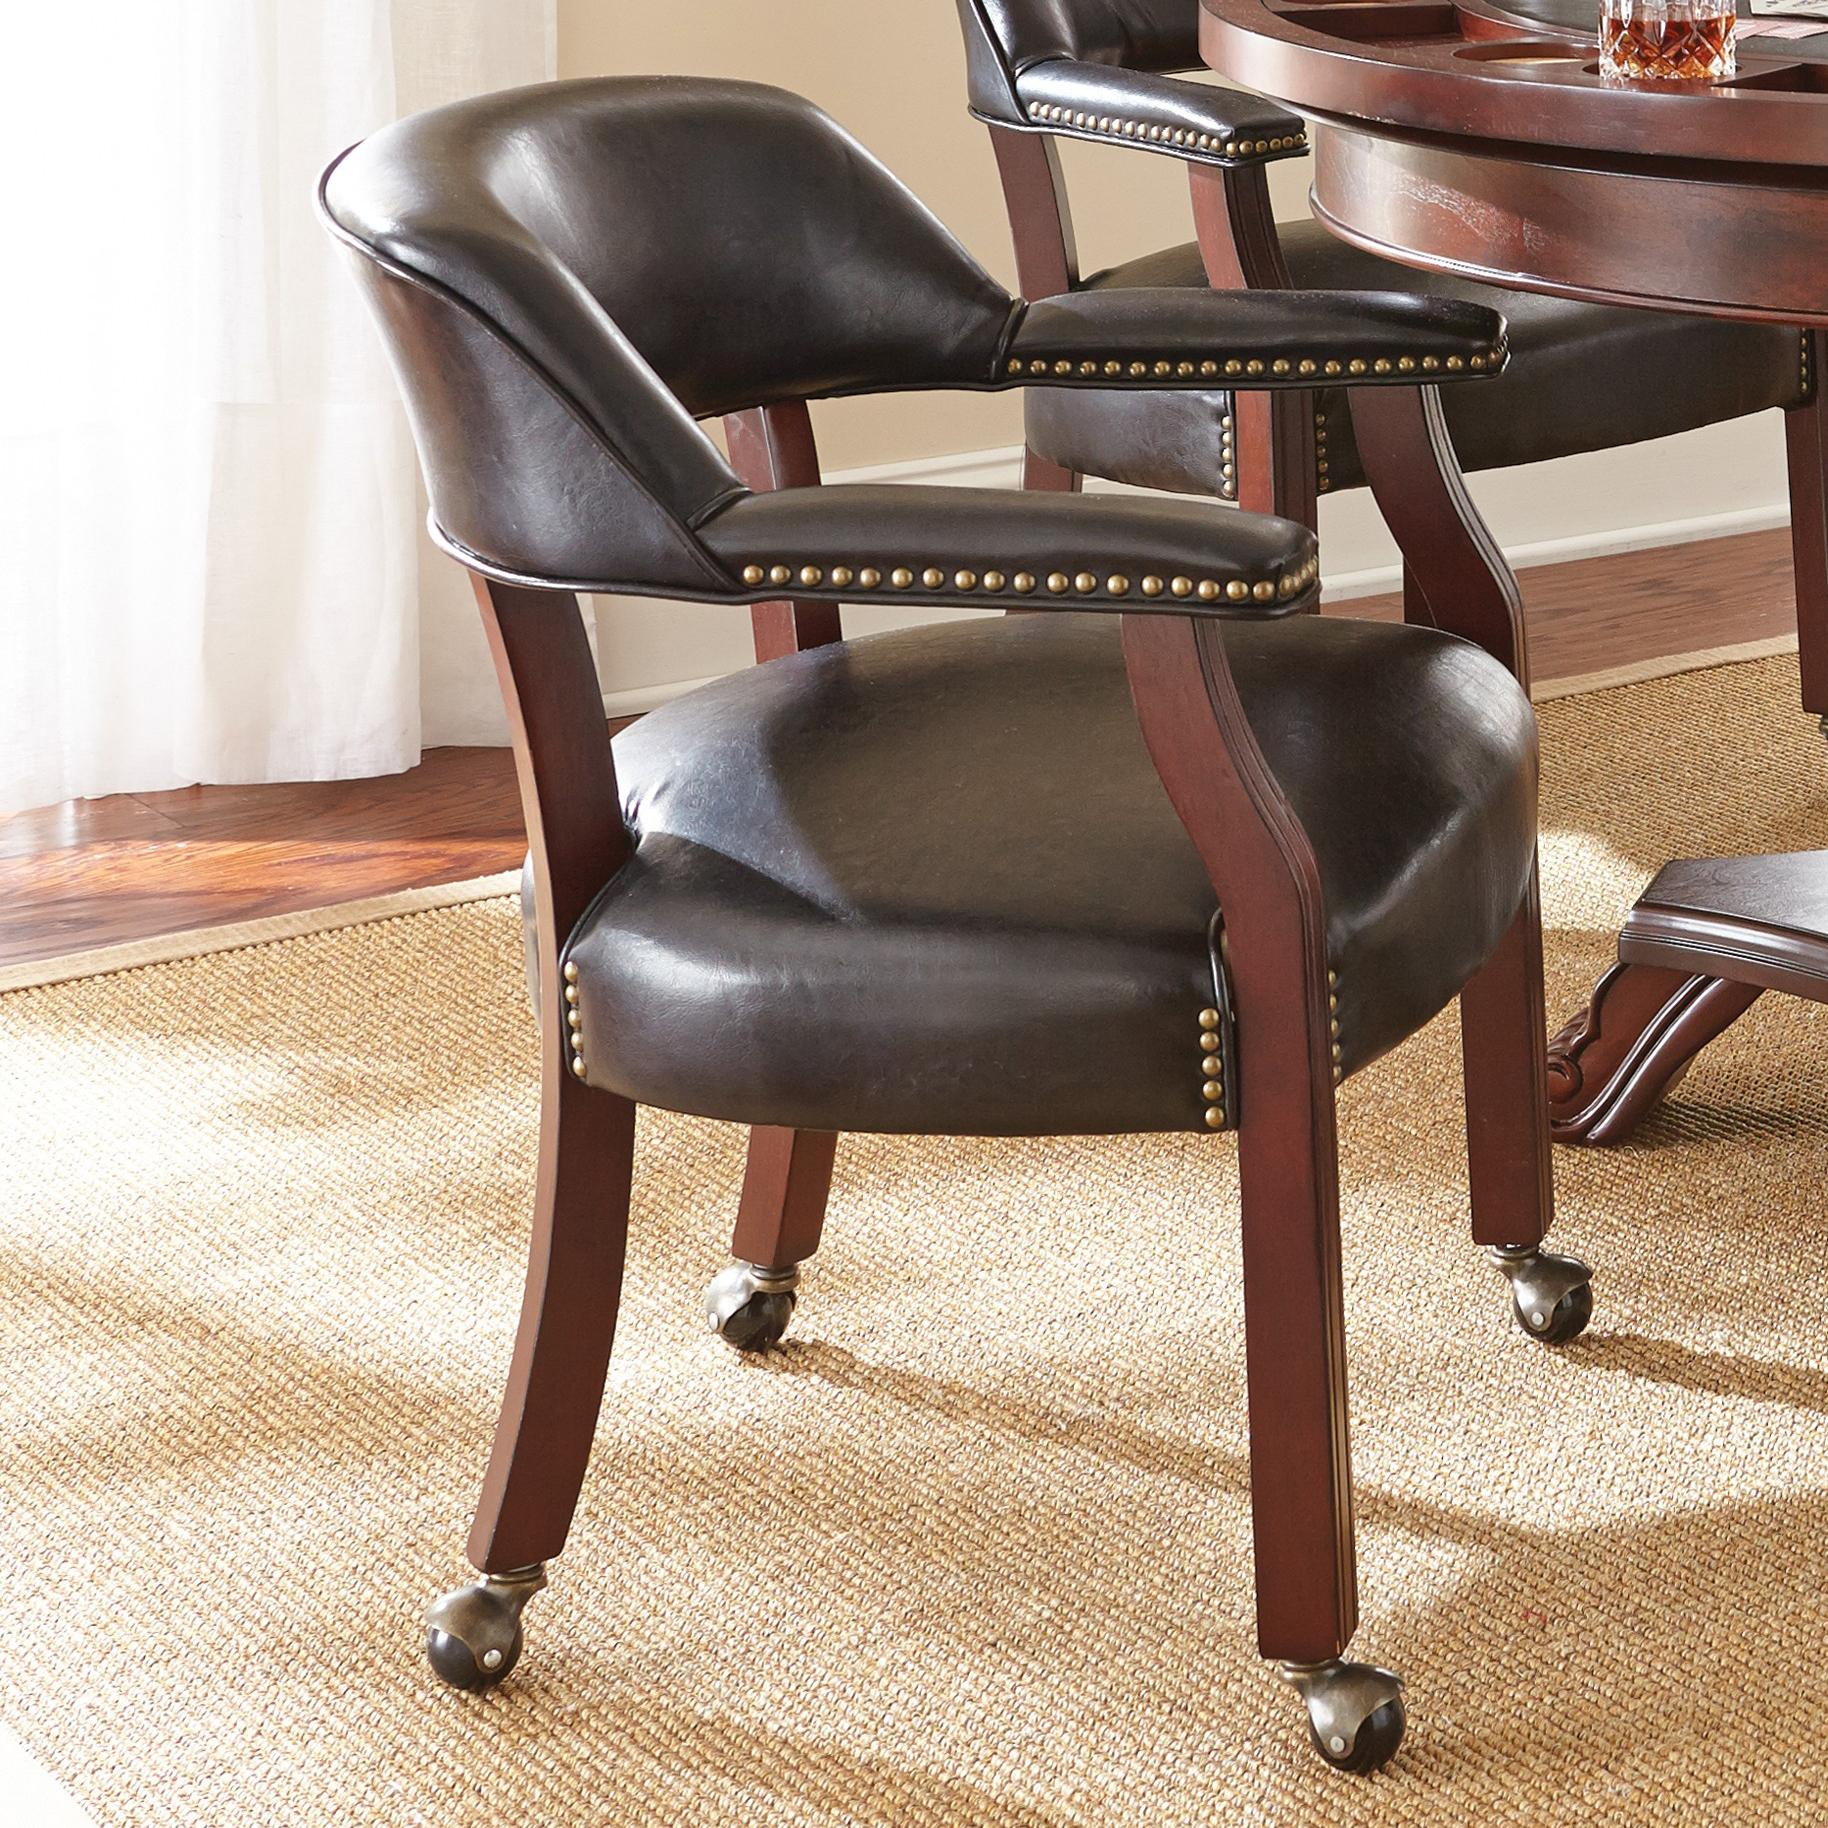 Prime Tournament Tournament Game Arm Chair With Casters